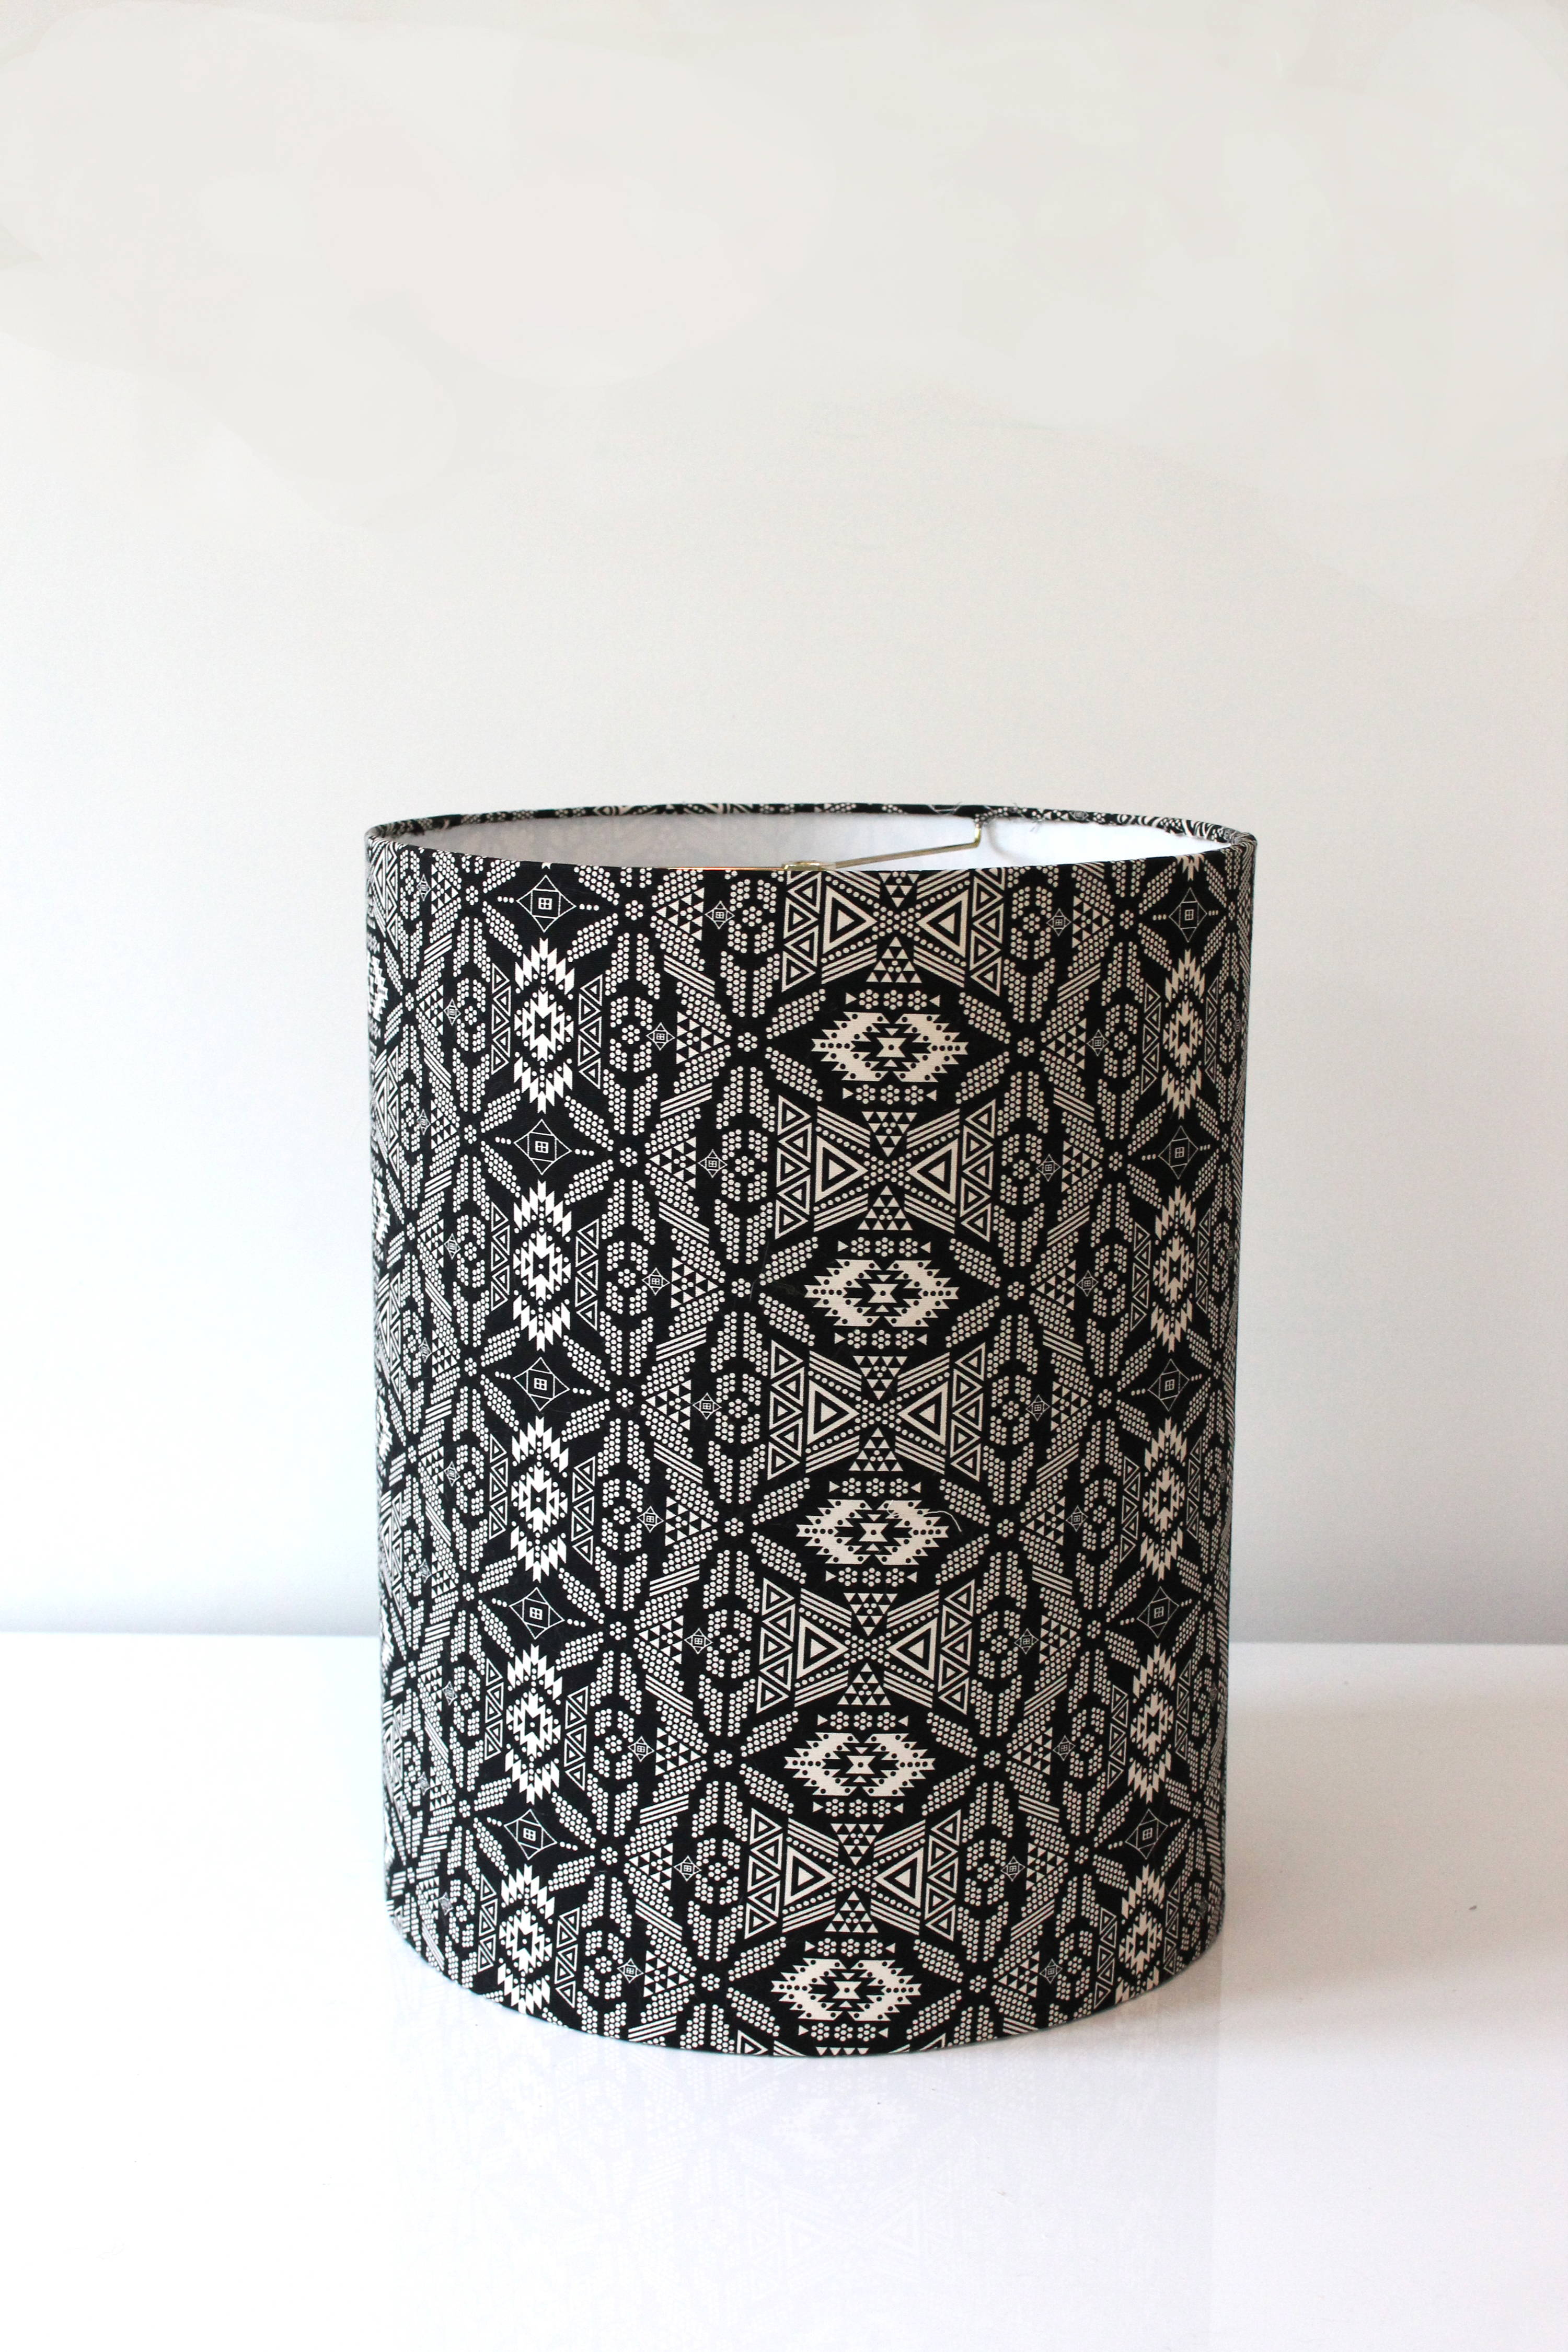 Making A DIY Lampshade From Scratch May Seem Like Daunting Prospect But With An